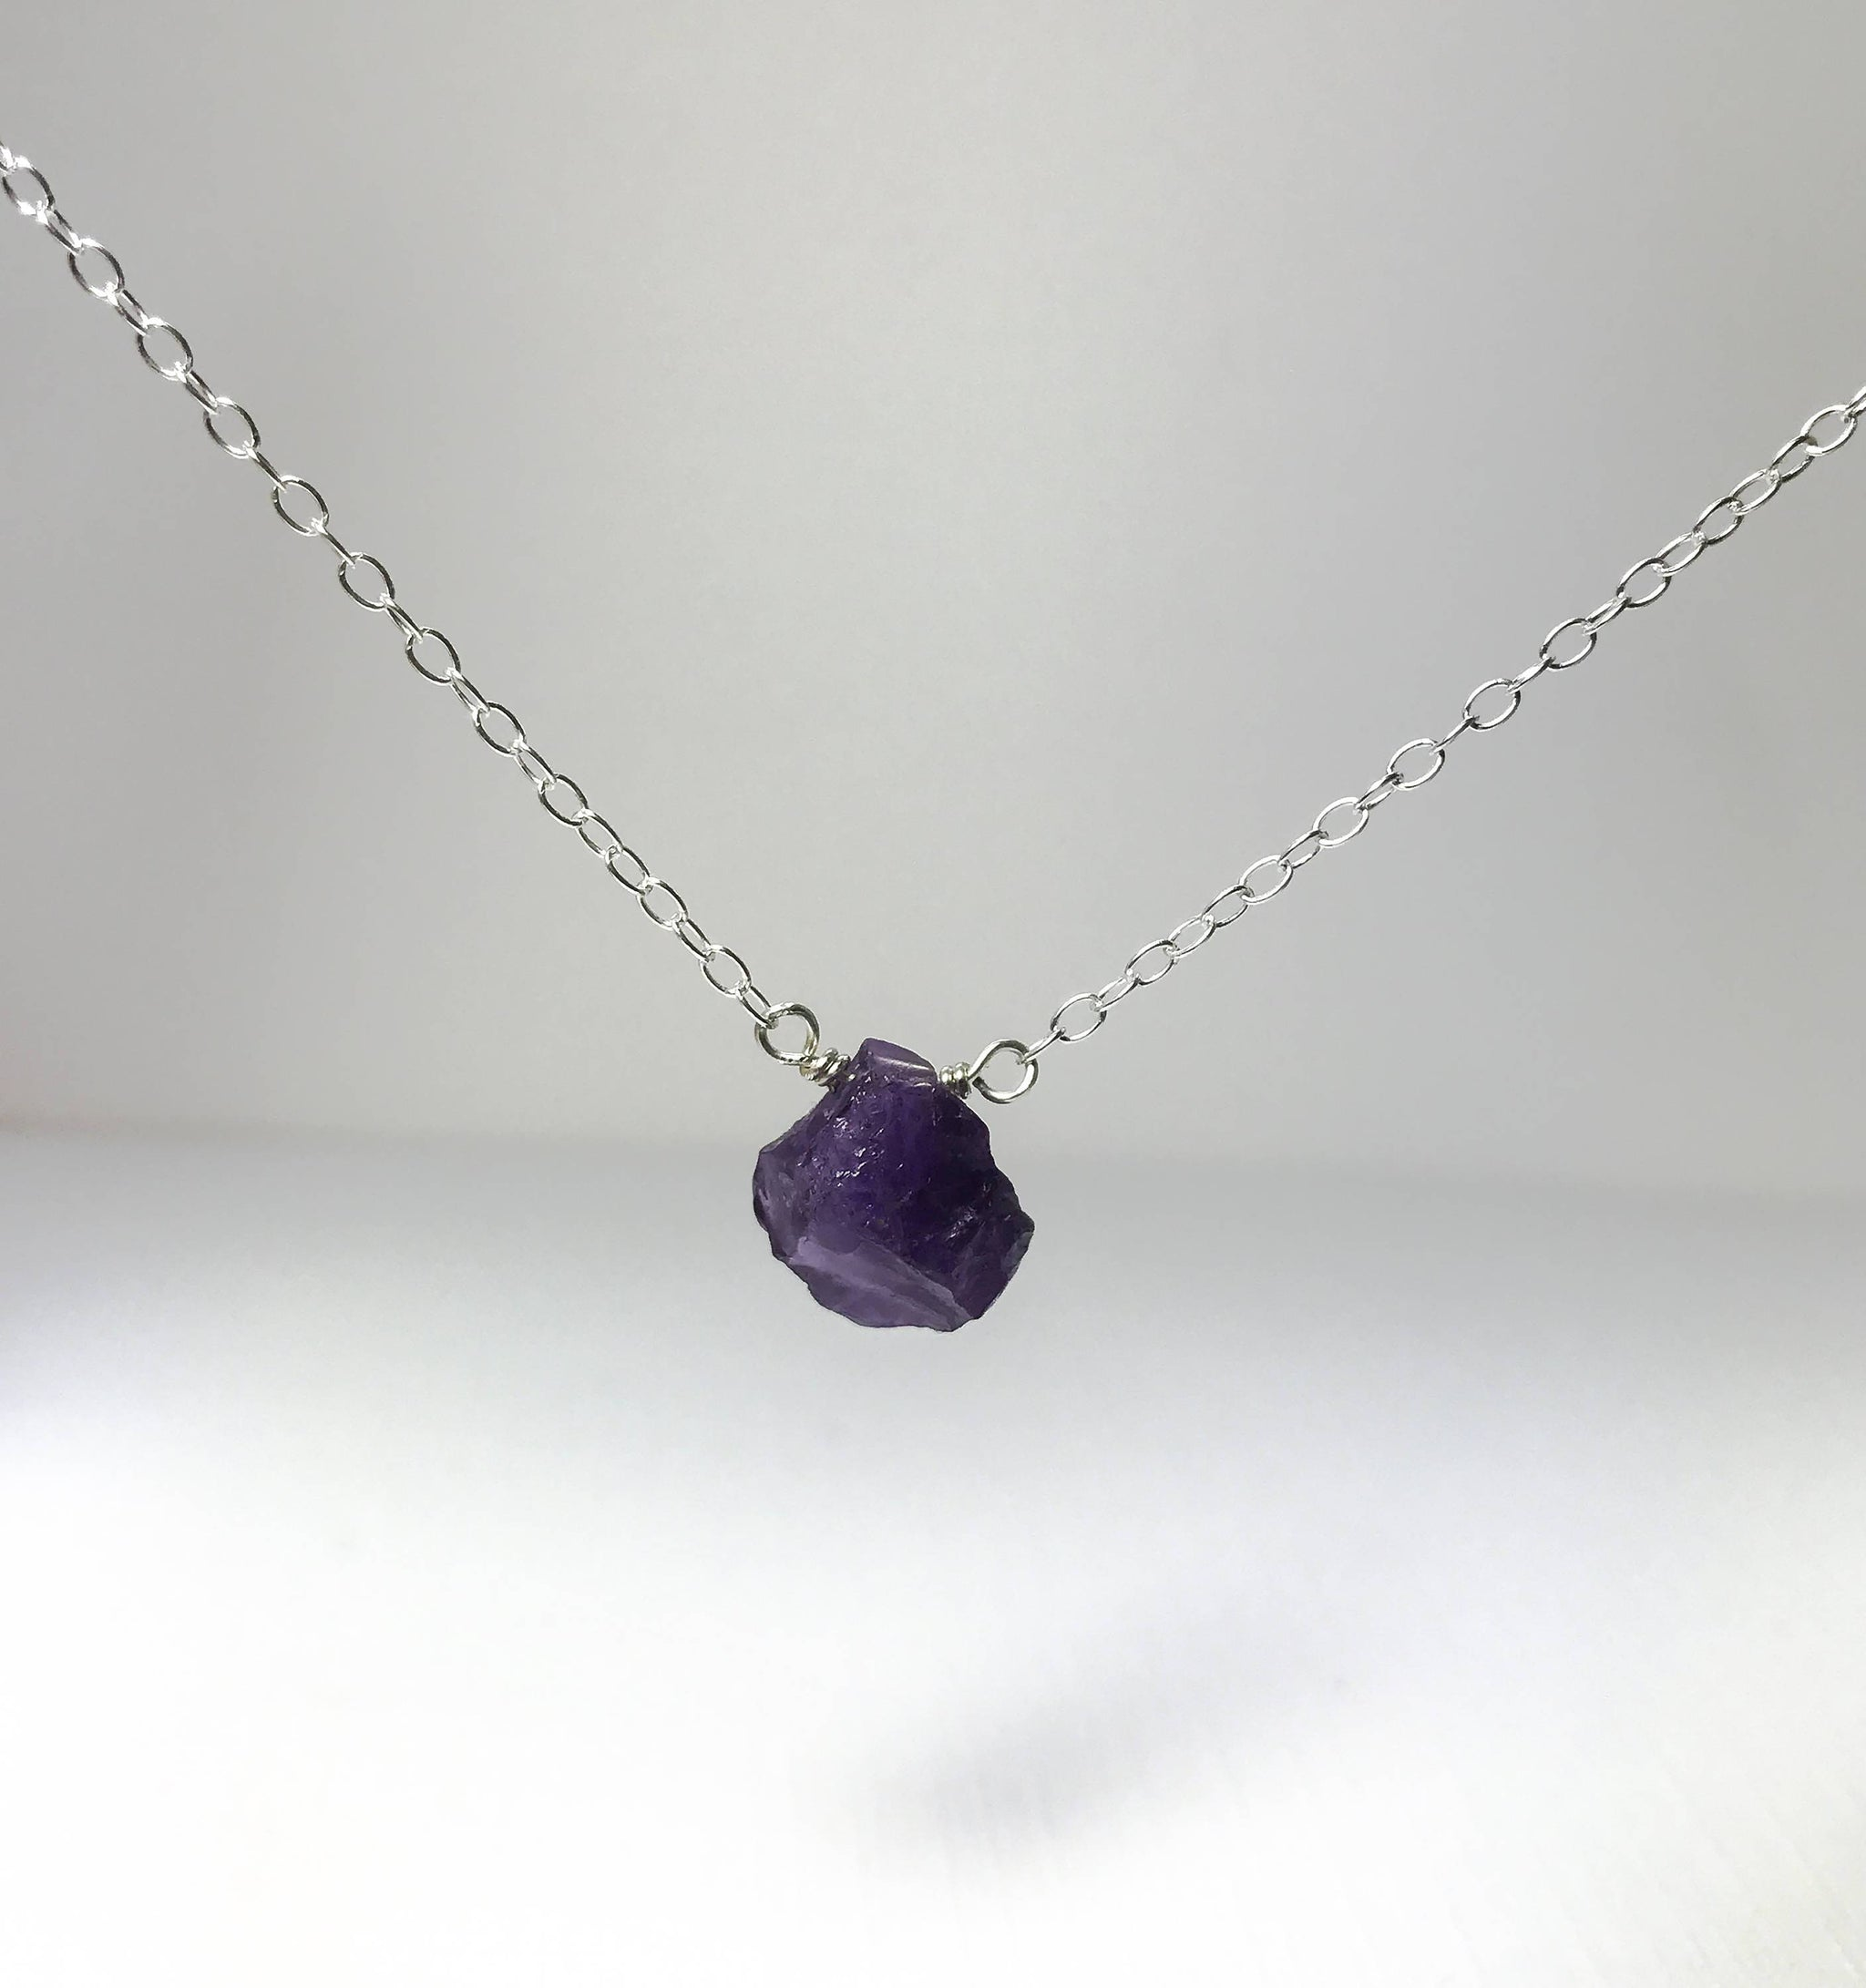 Raw amethyst necklace rough amethyst necklace february birthstone raw amethyst necklace rough amethyst necklace february birthstone crown chakra stone aloadofball Gallery